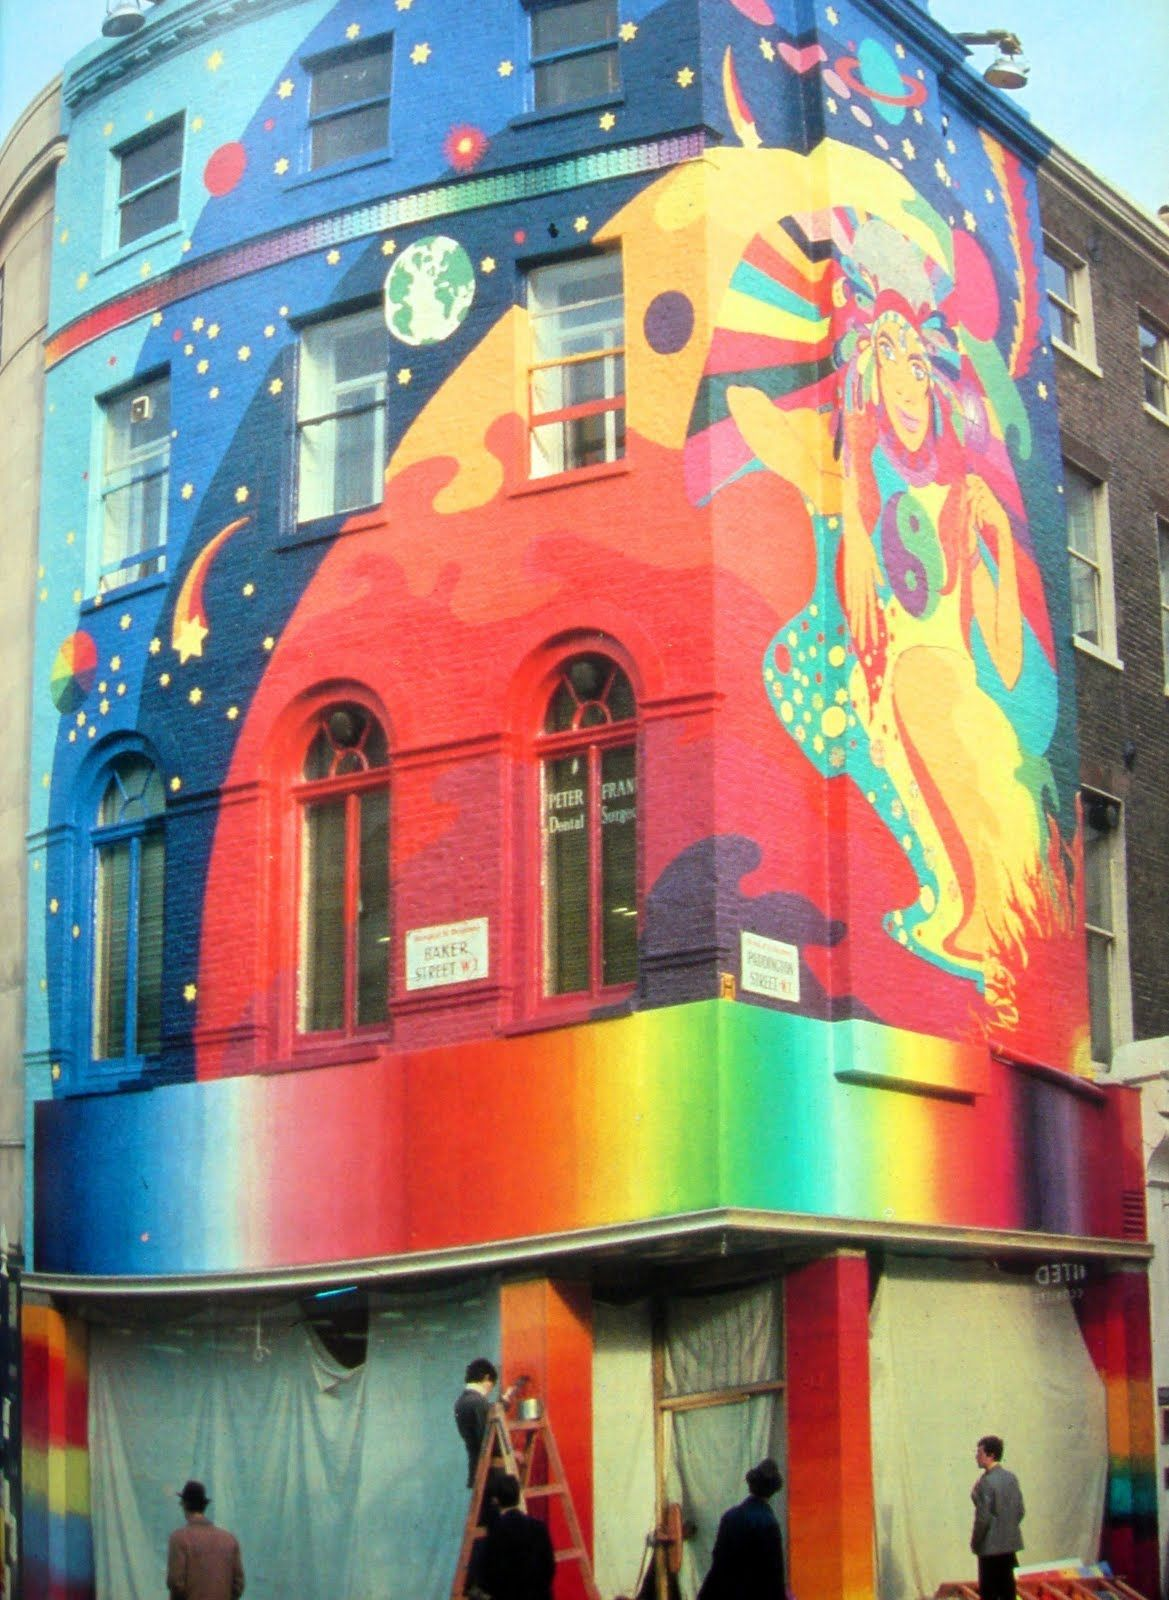 the beatles 39 apple boutique in london with mural by dutch